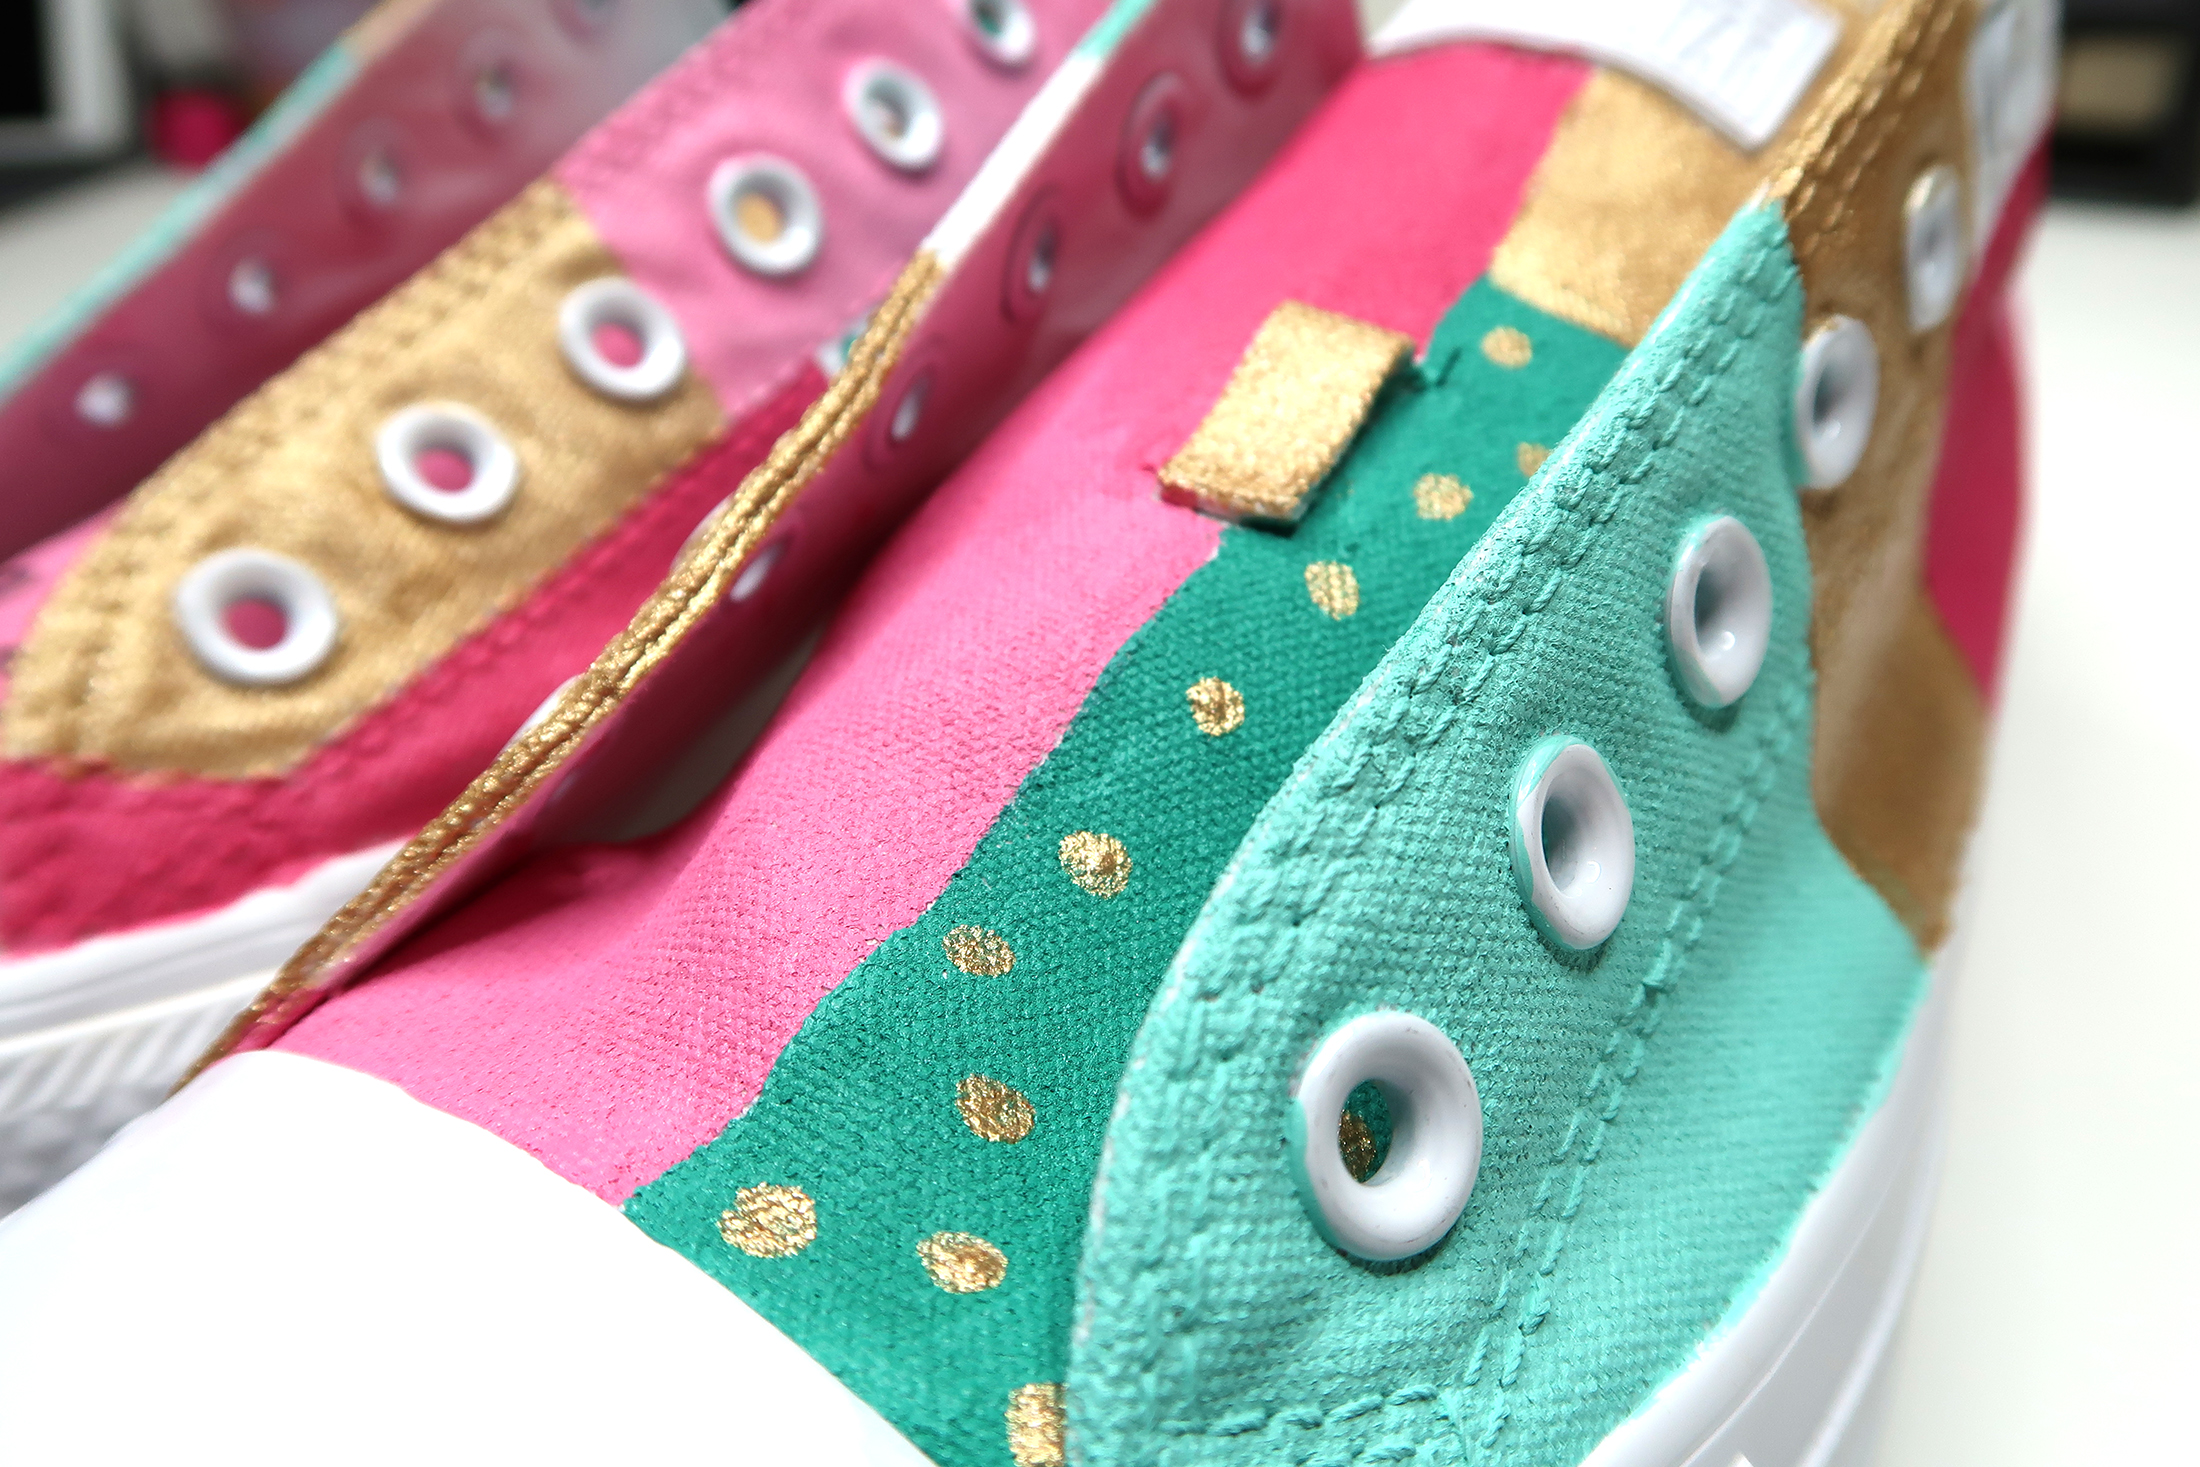 Painted-Converse-Close-Up-2.jpg